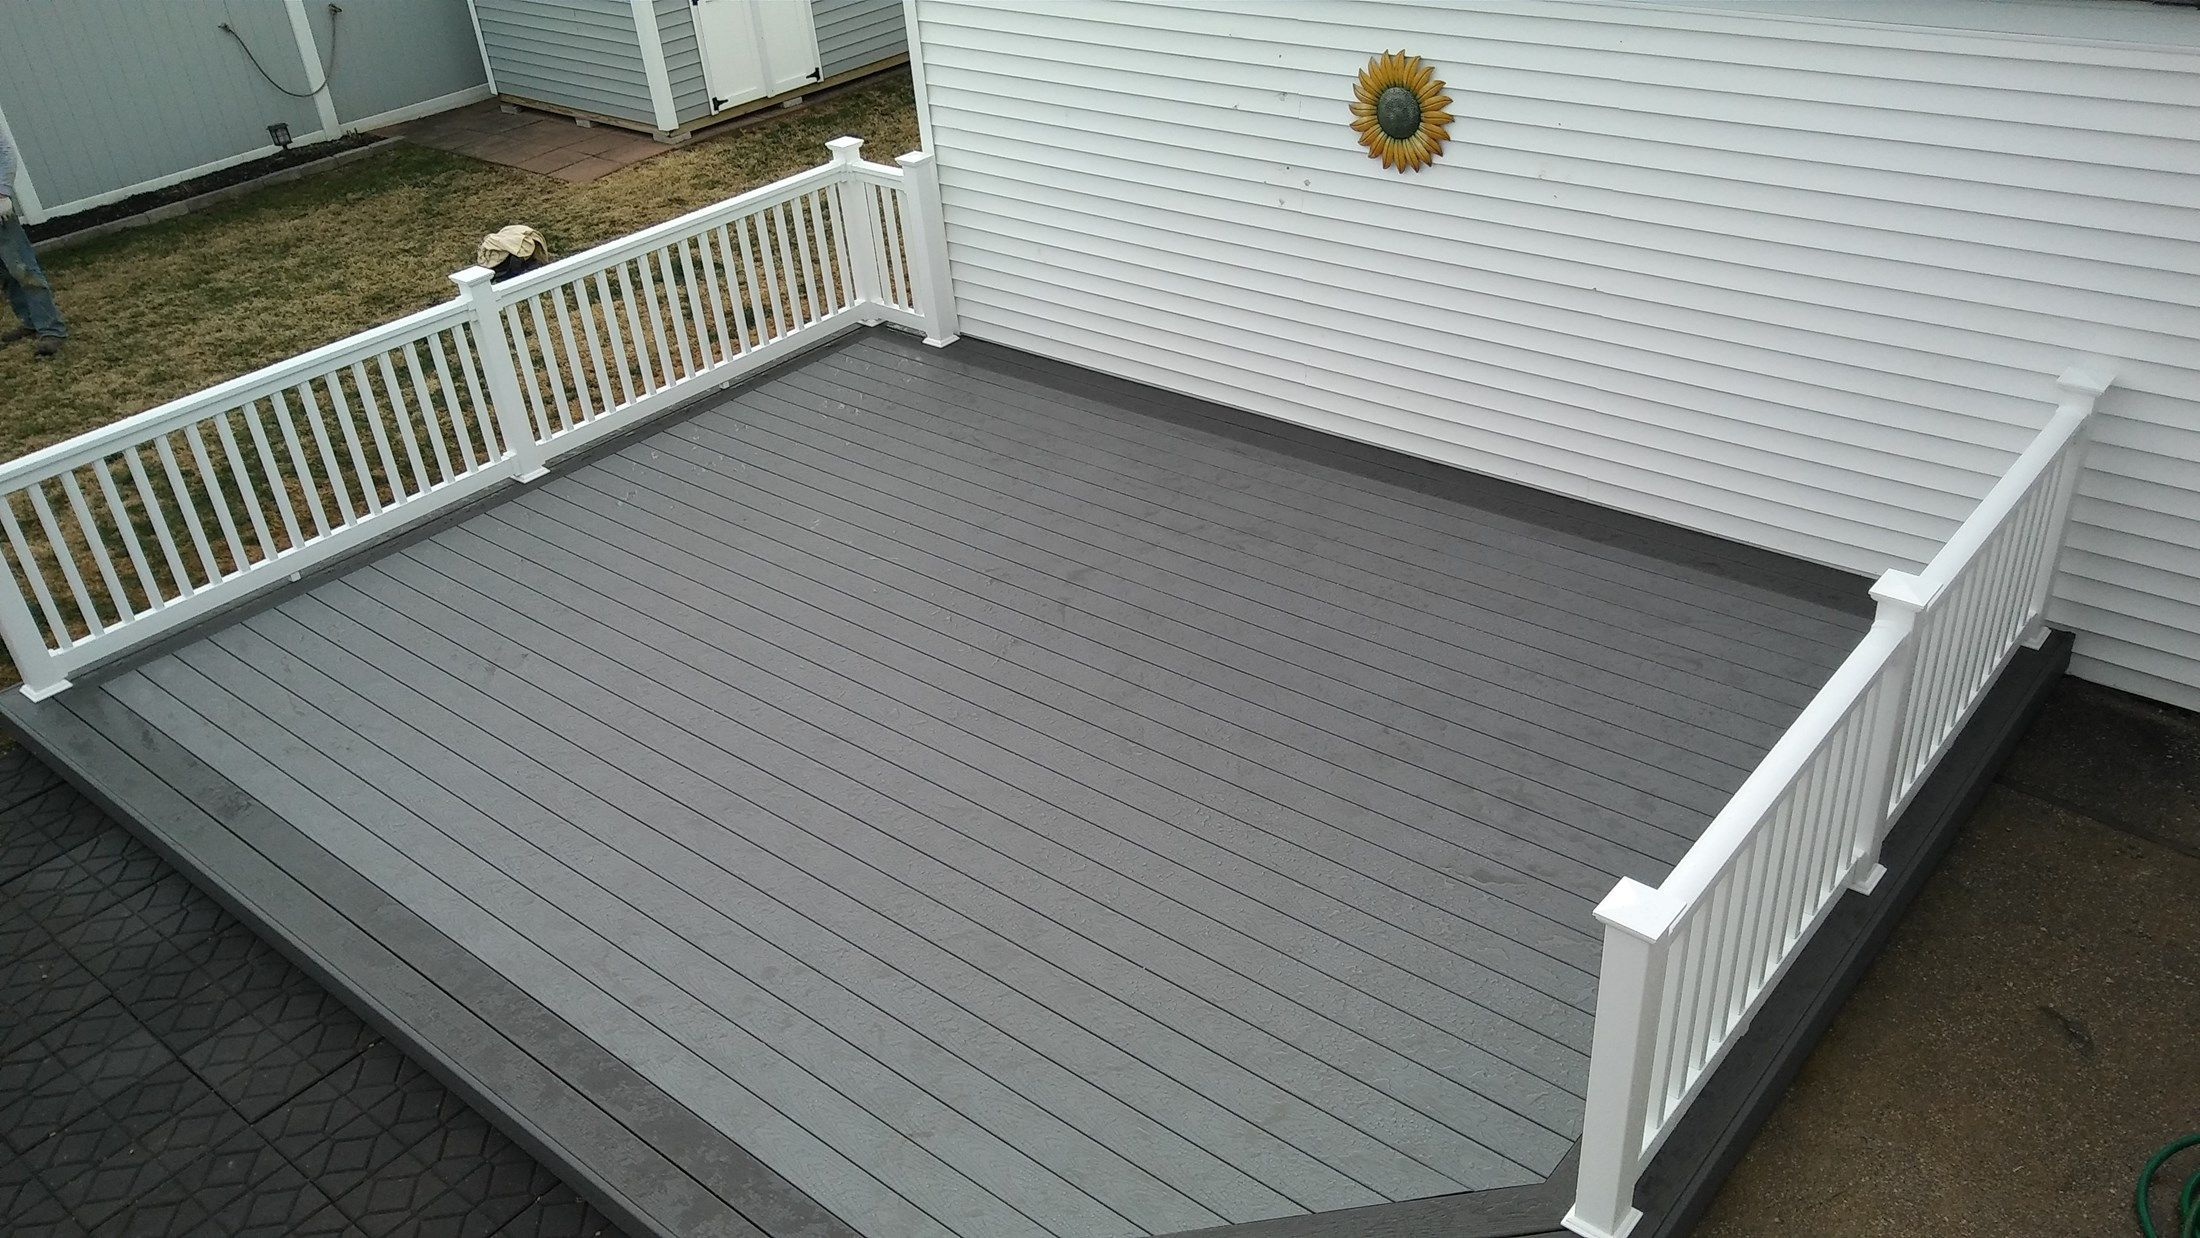 Image Result For Trex Select Winchester Grey Vs Pebble Grey Deck within sizing 2200 X 1238